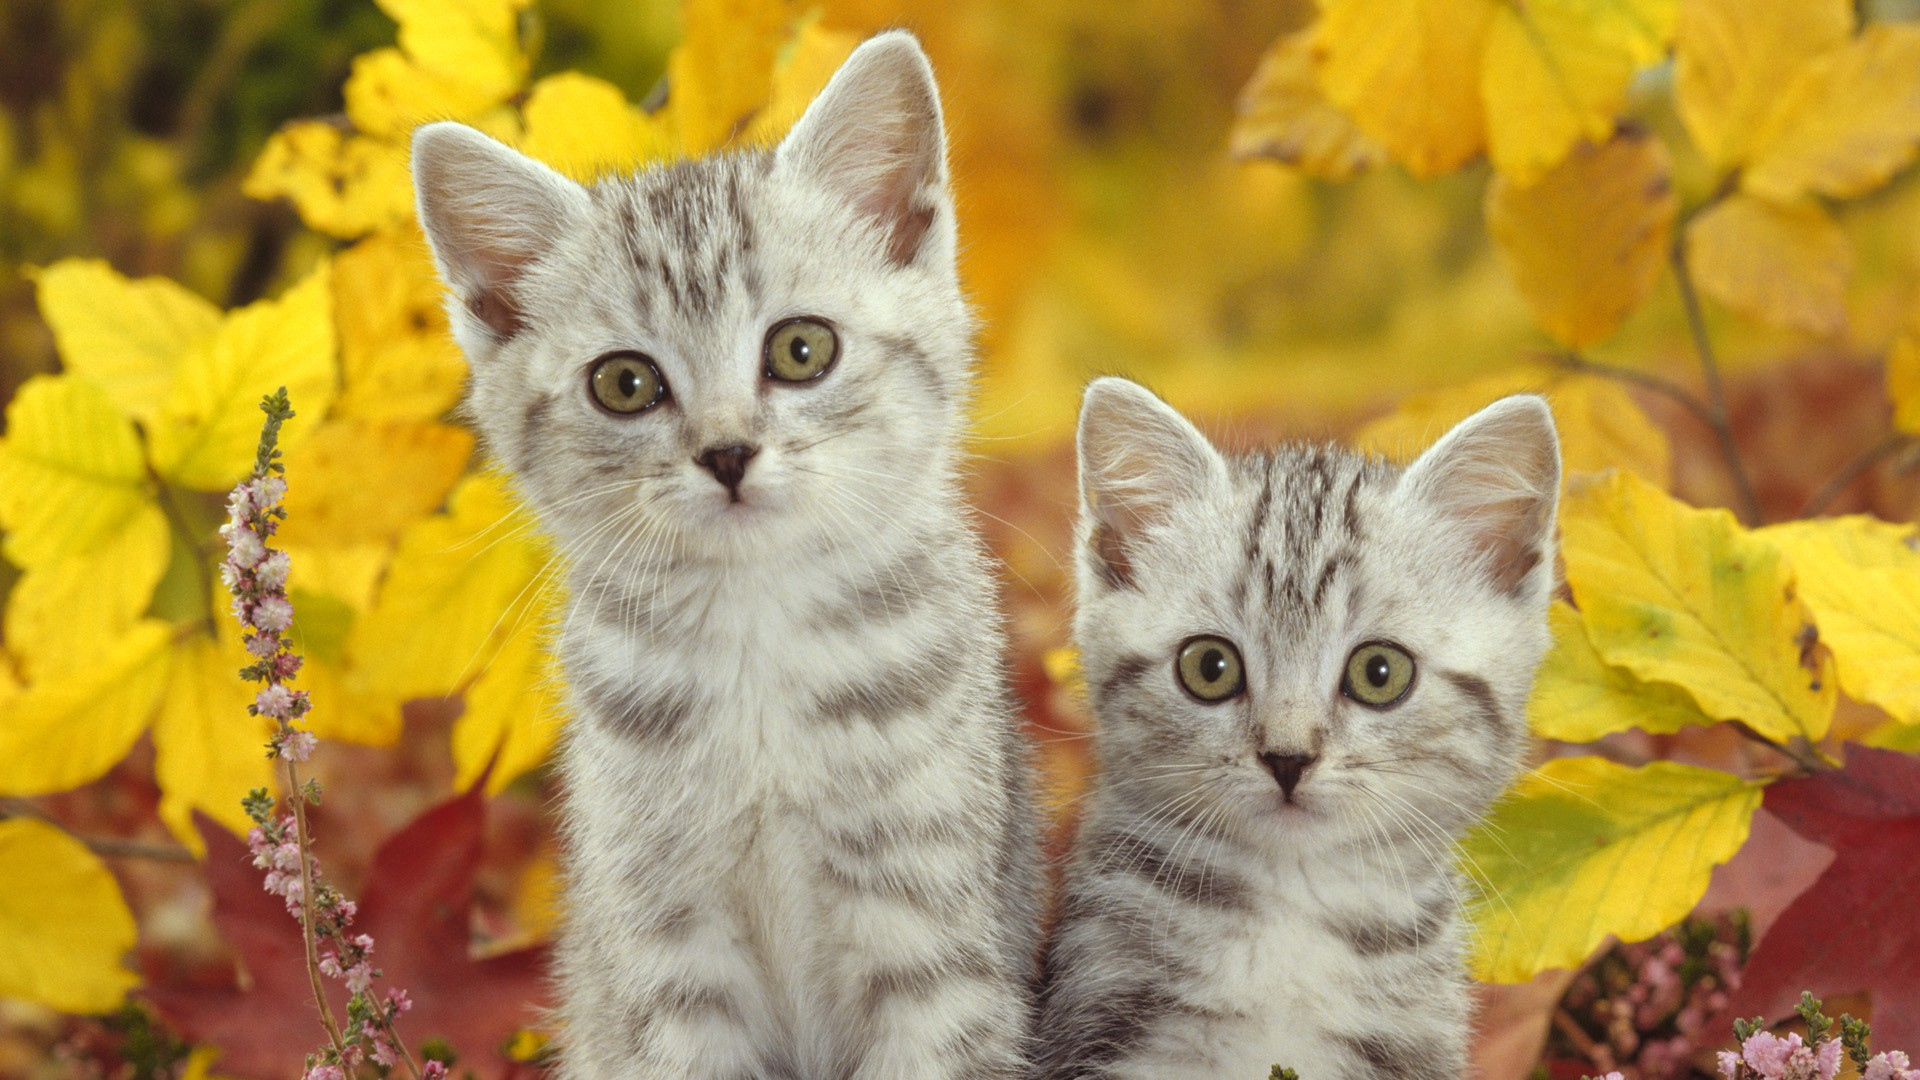 Cats wallpaper download free hd wallpapers of cats for - Kitten wallpaper hd ...